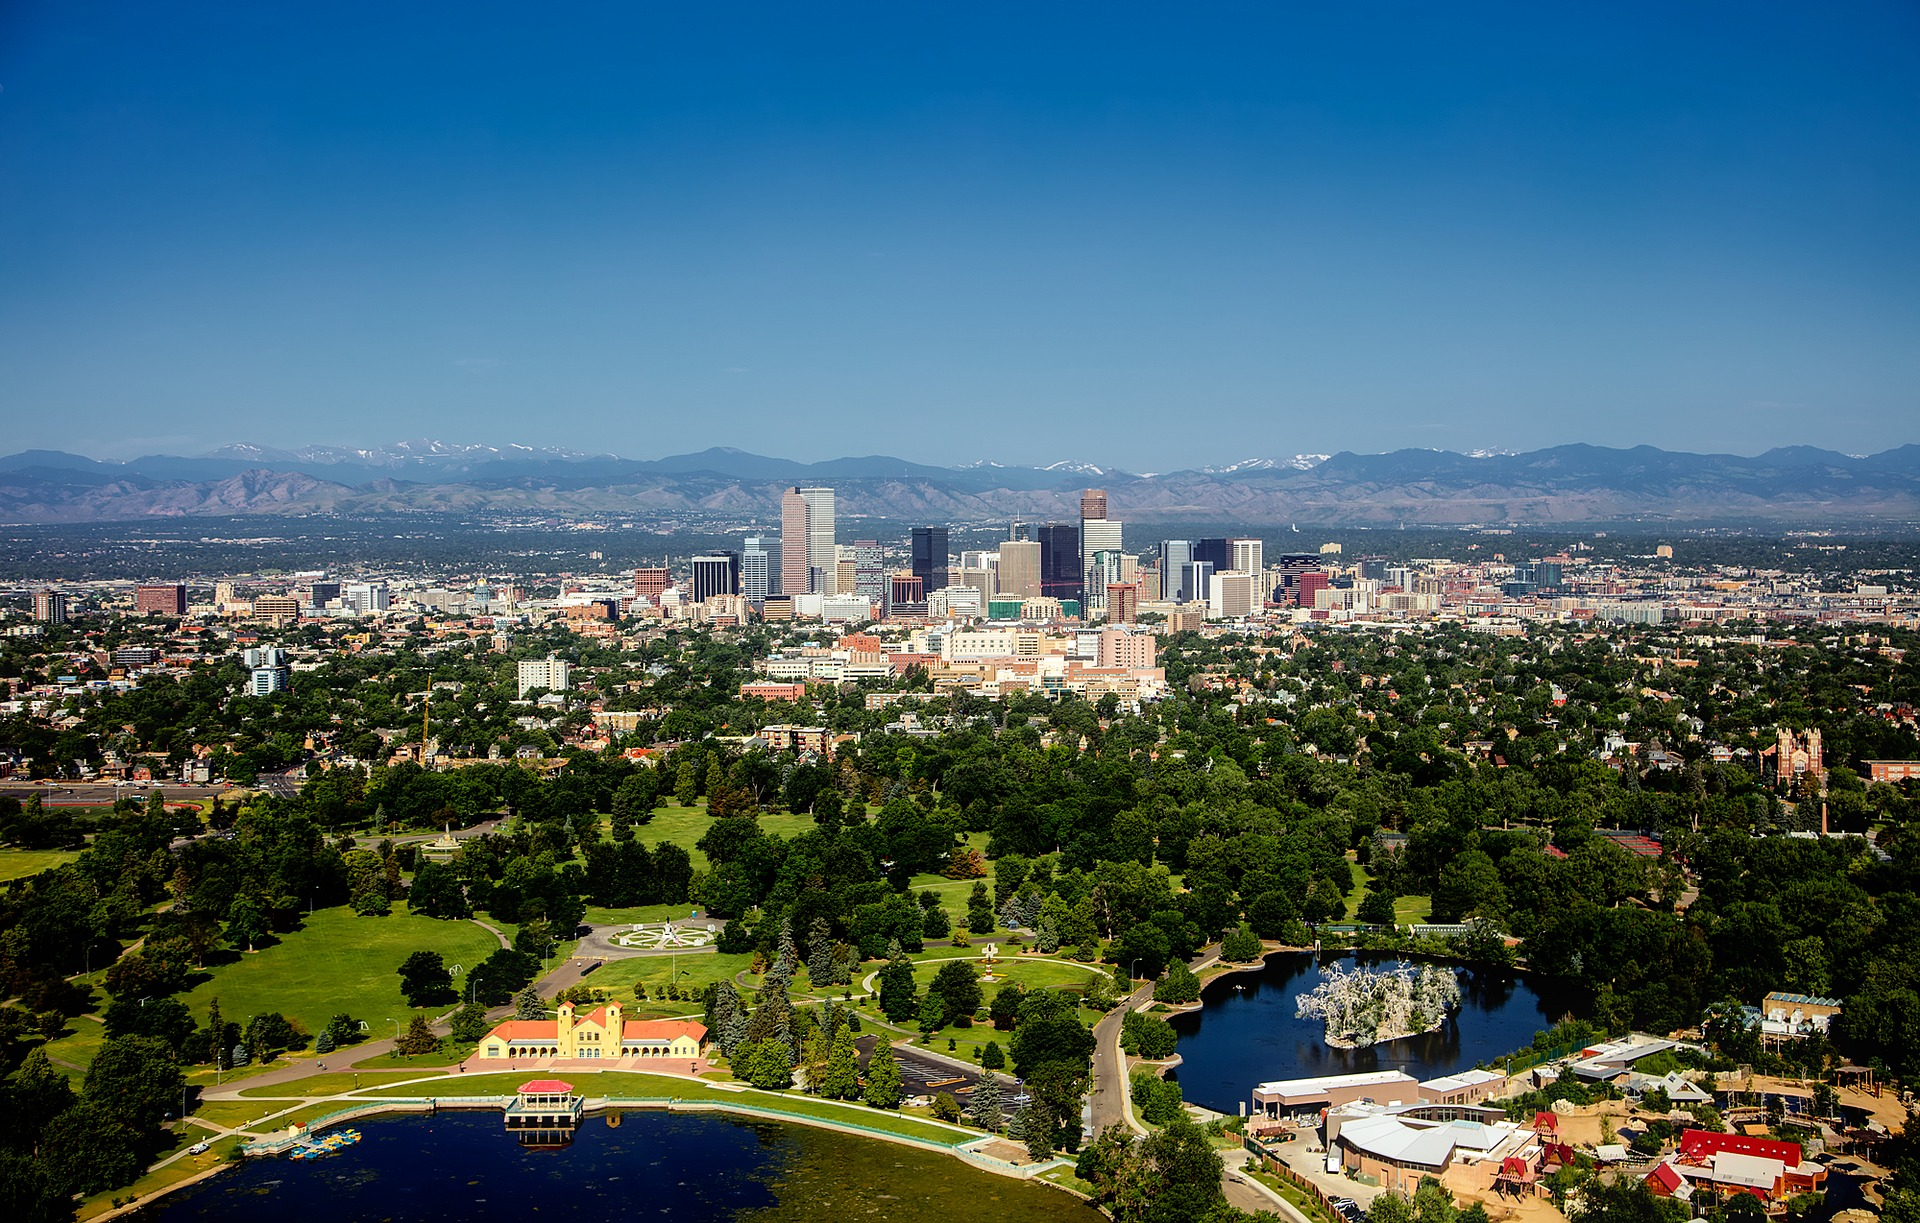 Car Rental Denver Airport: Getting Your Ride Fast